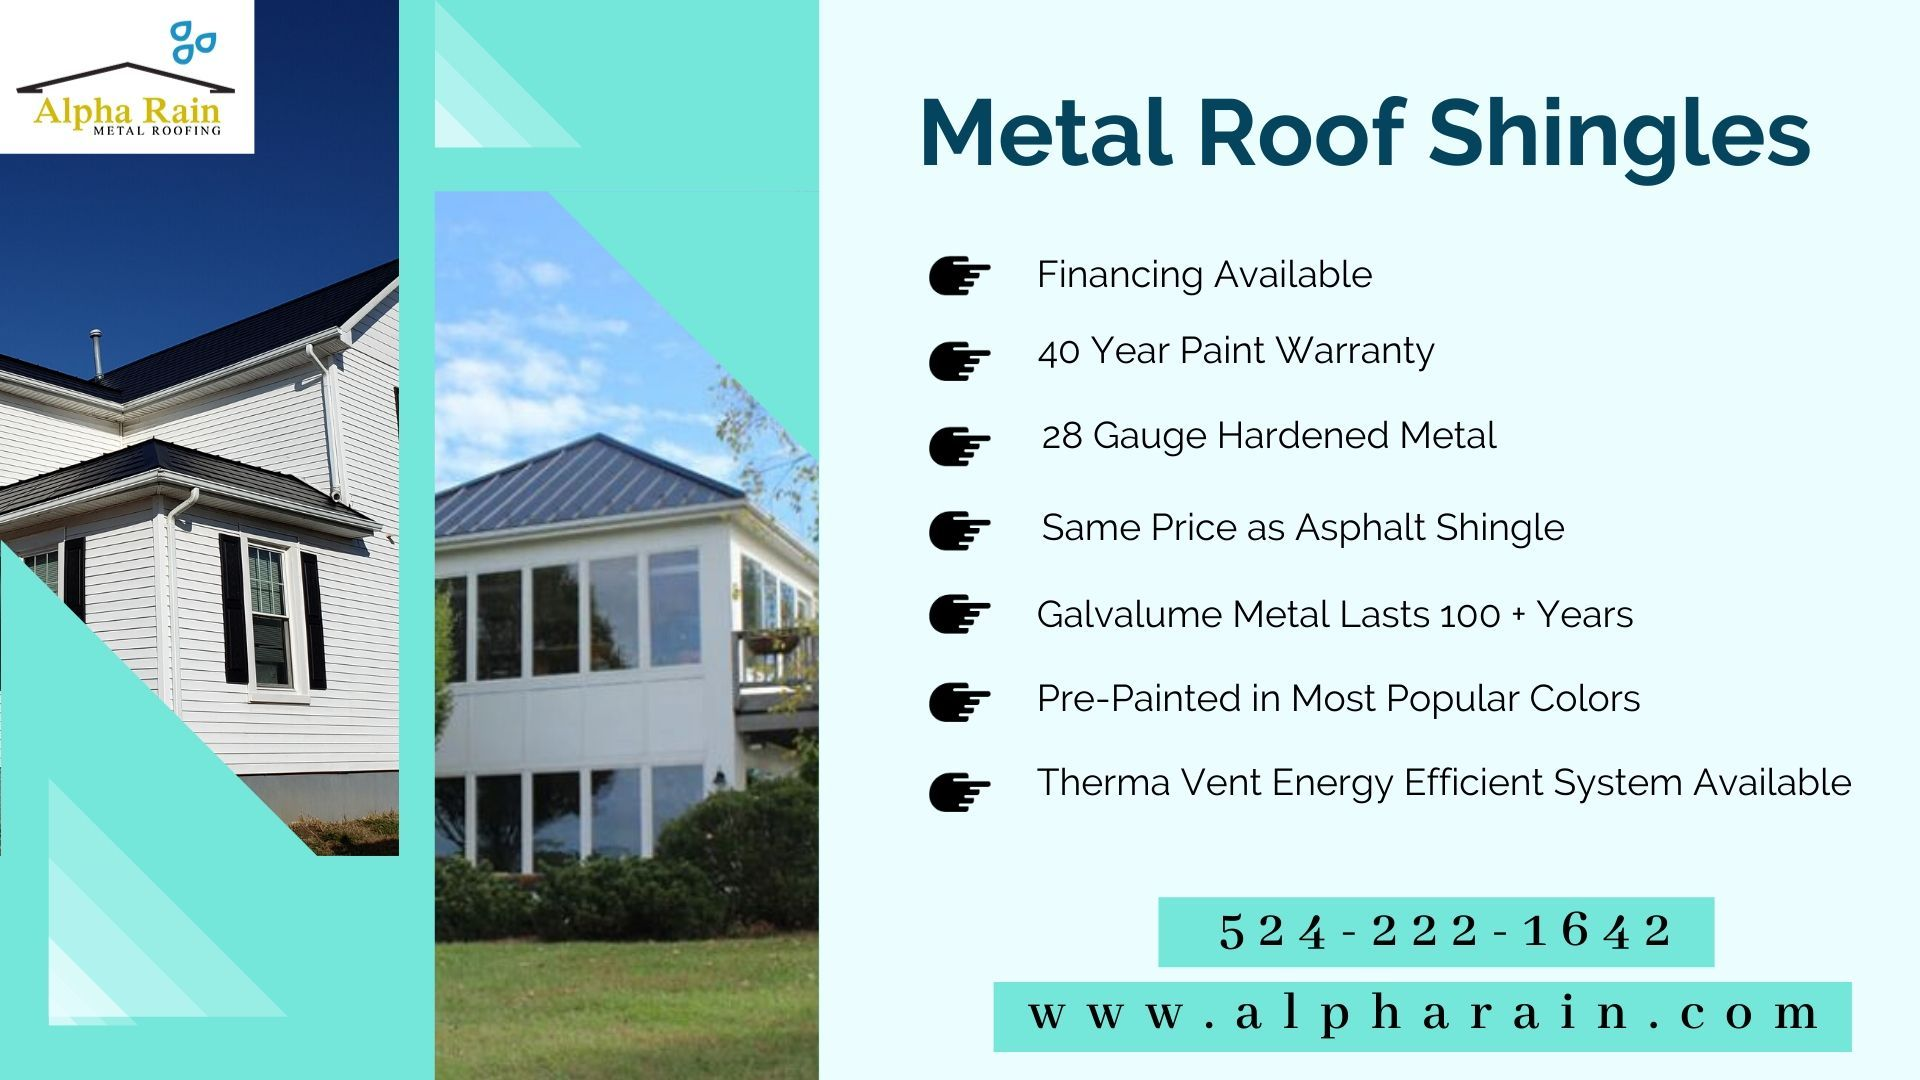 Affordable Metal Roof Shingles By Alpha Rain In 2020 Metal Shingle Roof Roof Shingles Shingling